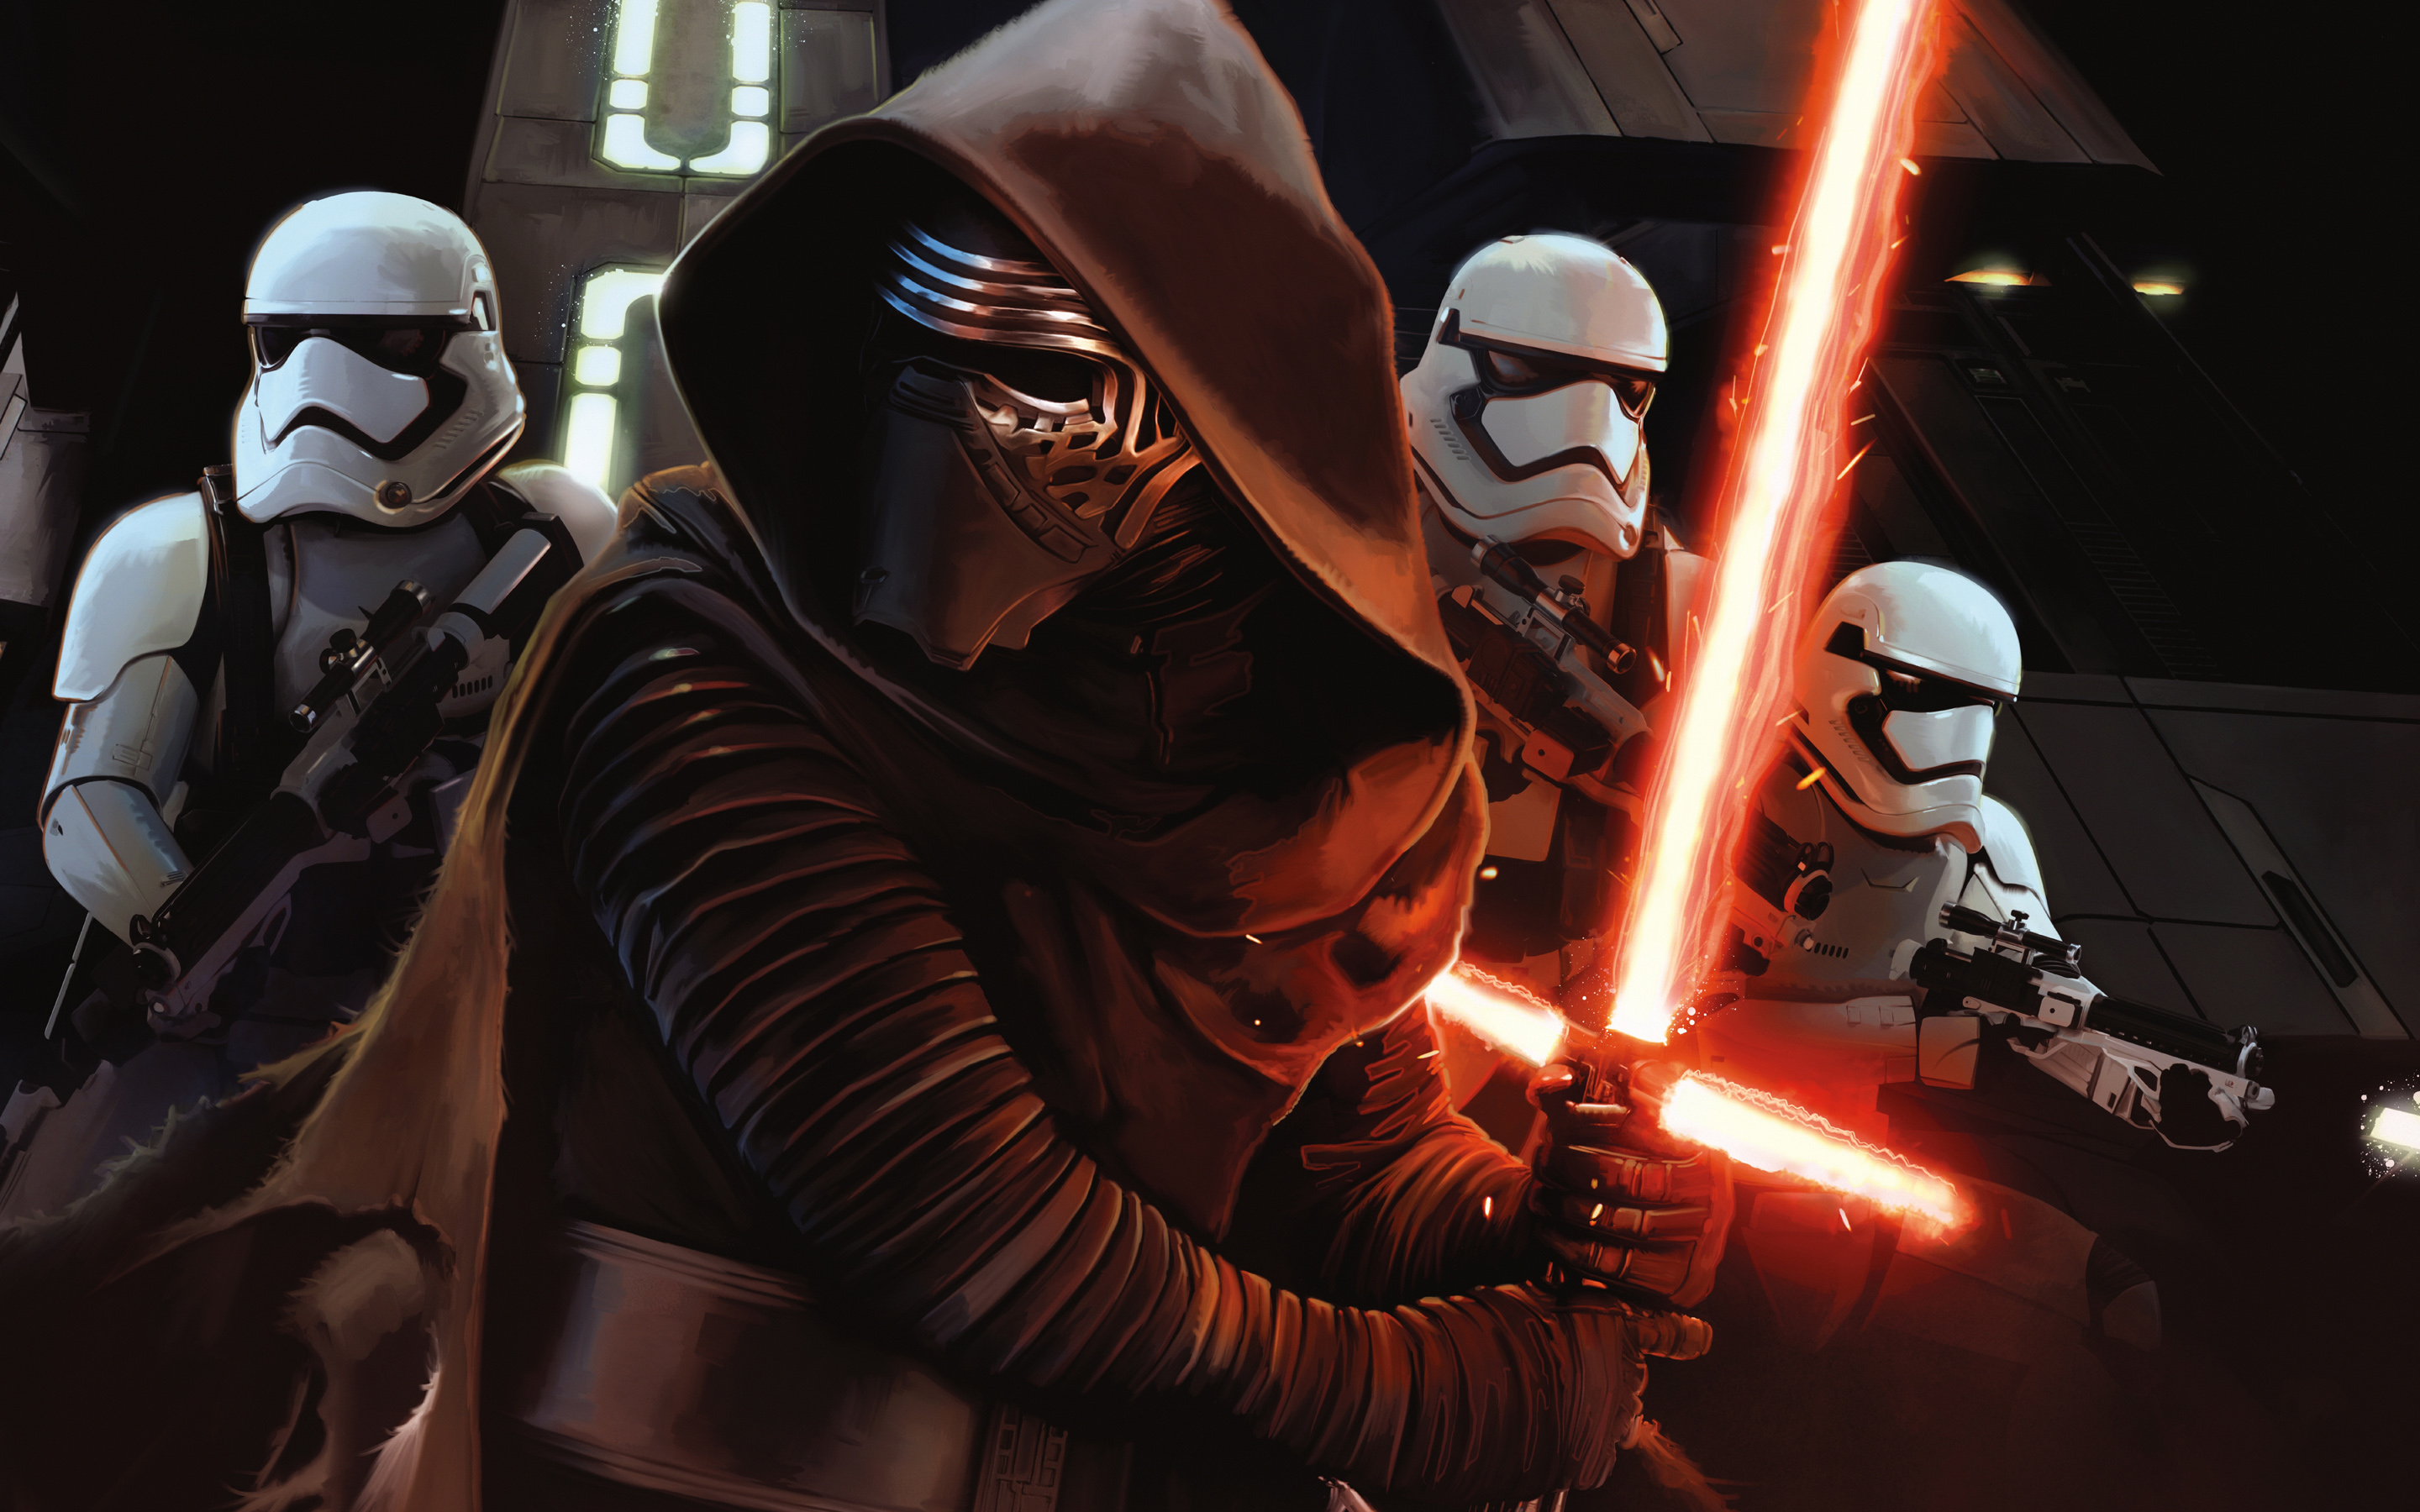 Star Wars Episode VII The Force Awakens Wallpapers HD Wallpapers 2880x1800